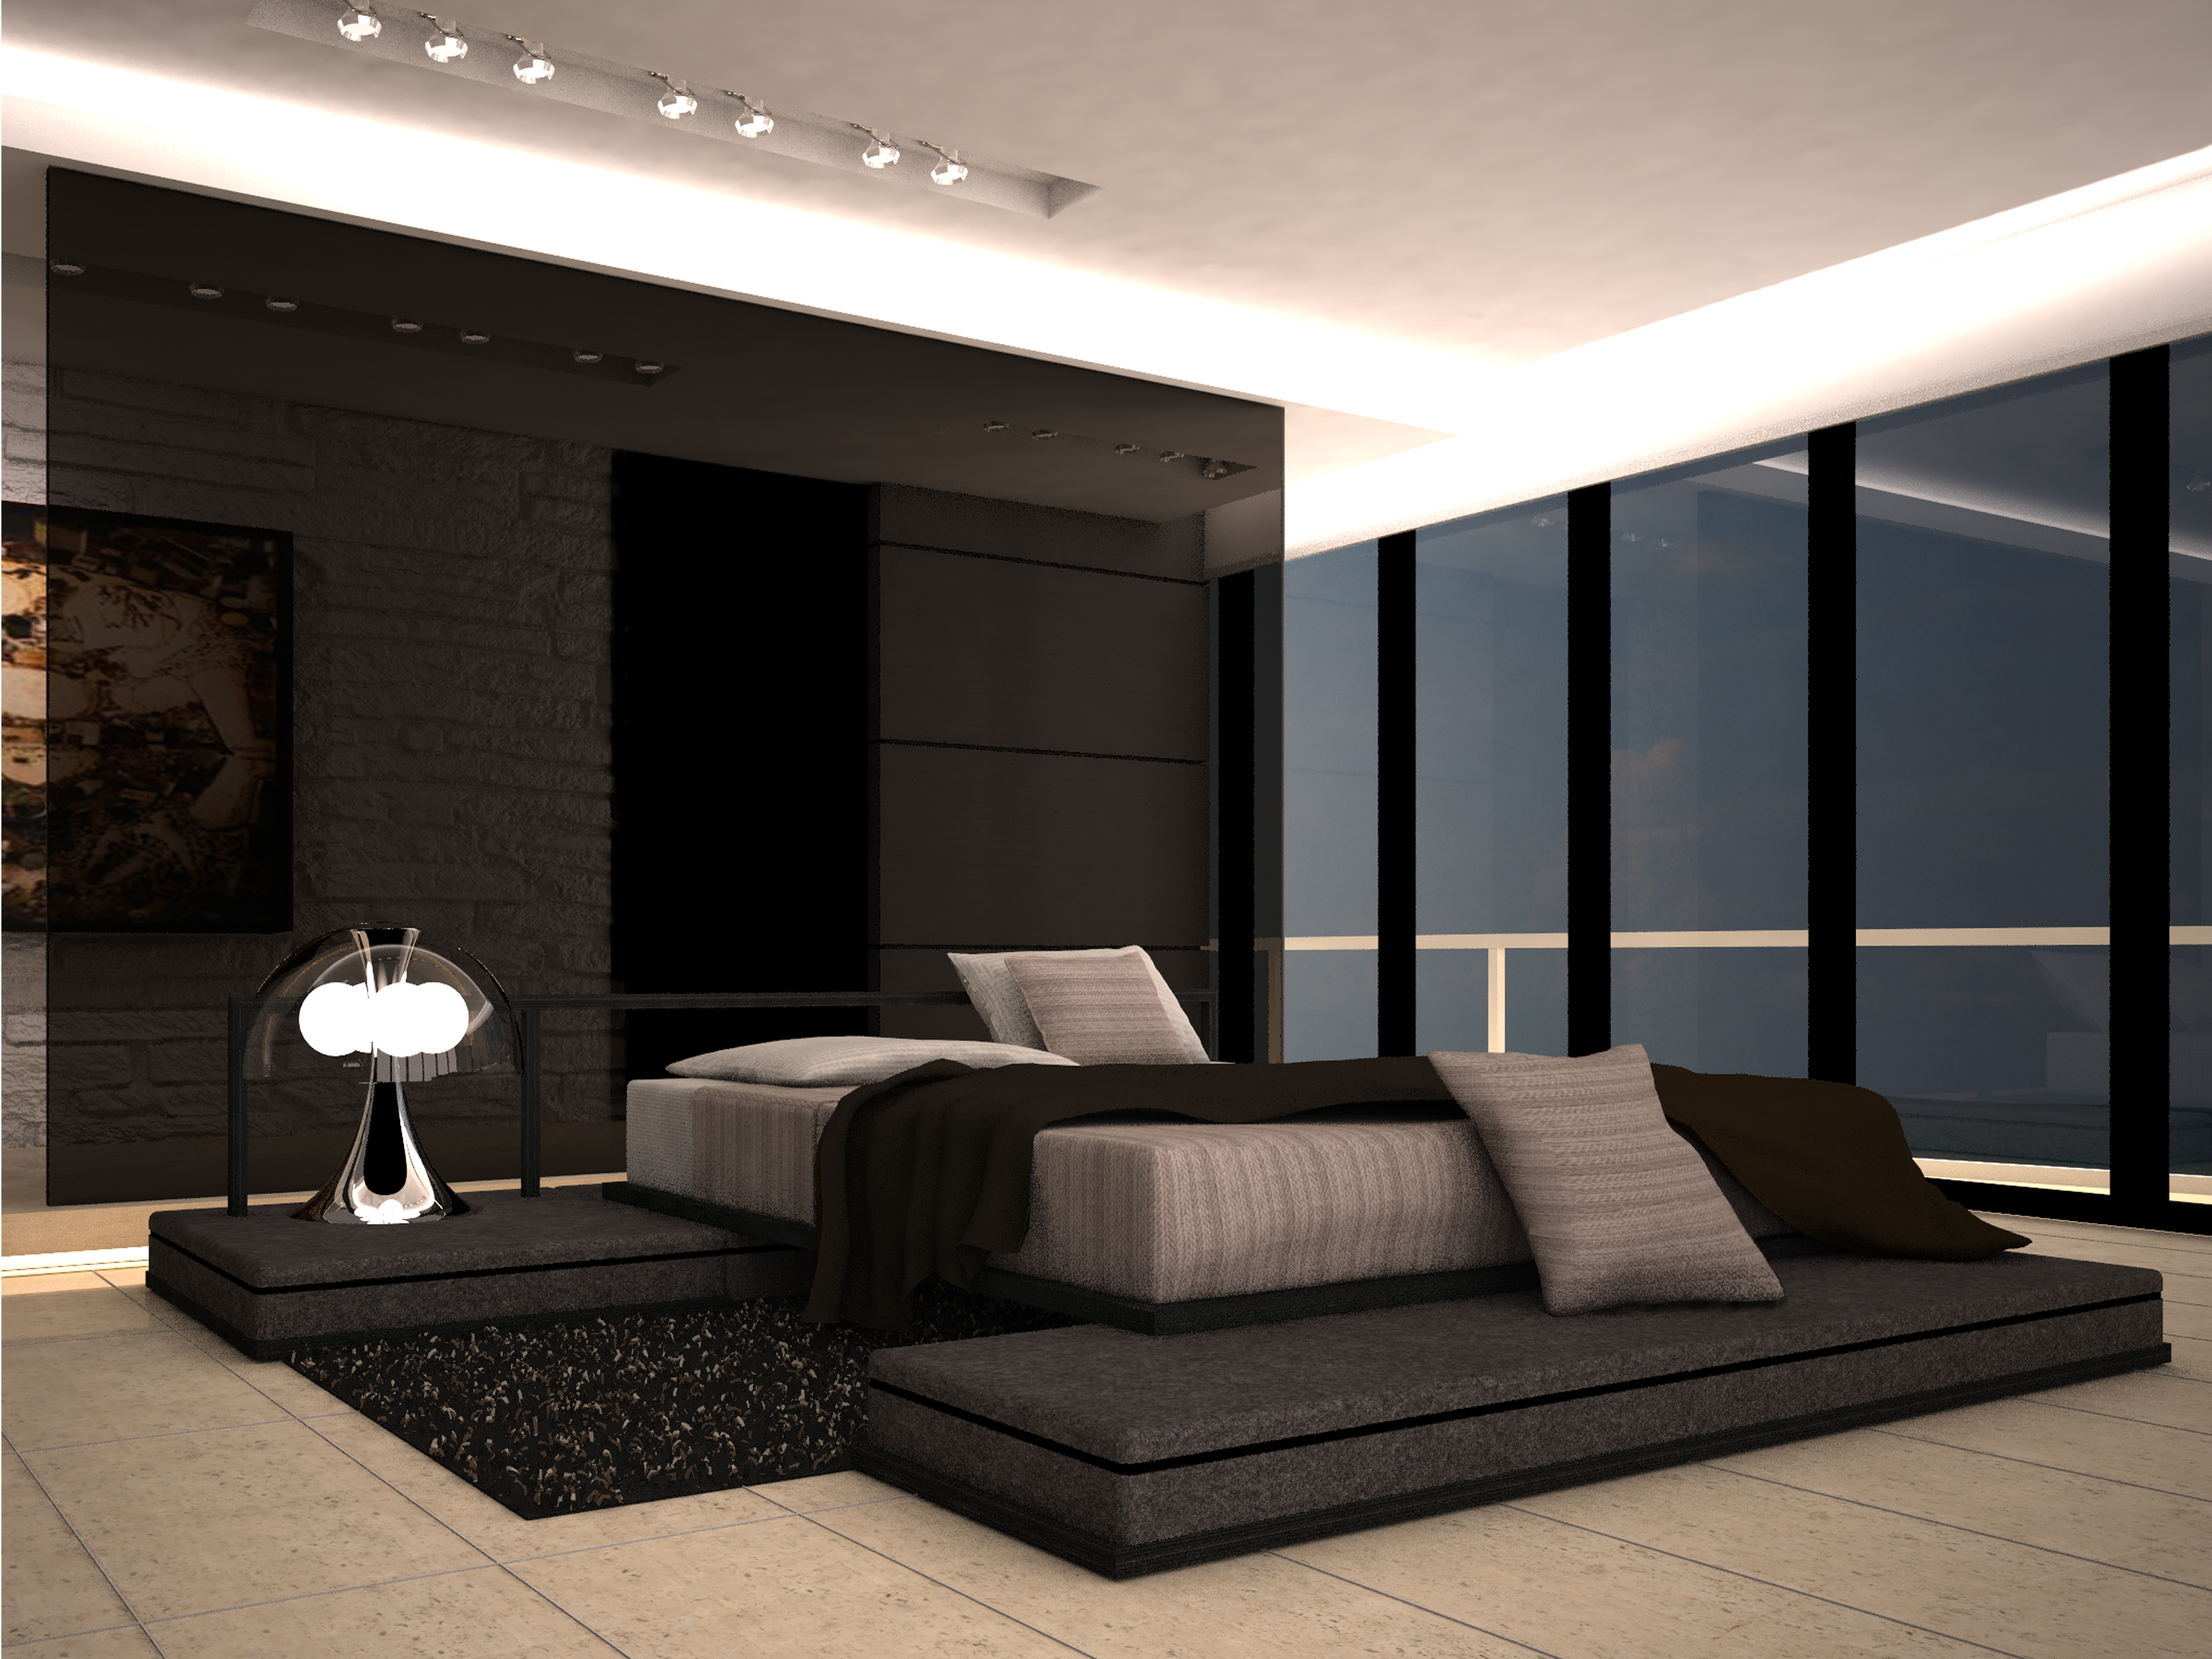 45 Master Bedroom Ideas For Your Home - The WoW Style on Master Bedroom Curtains  id=60972